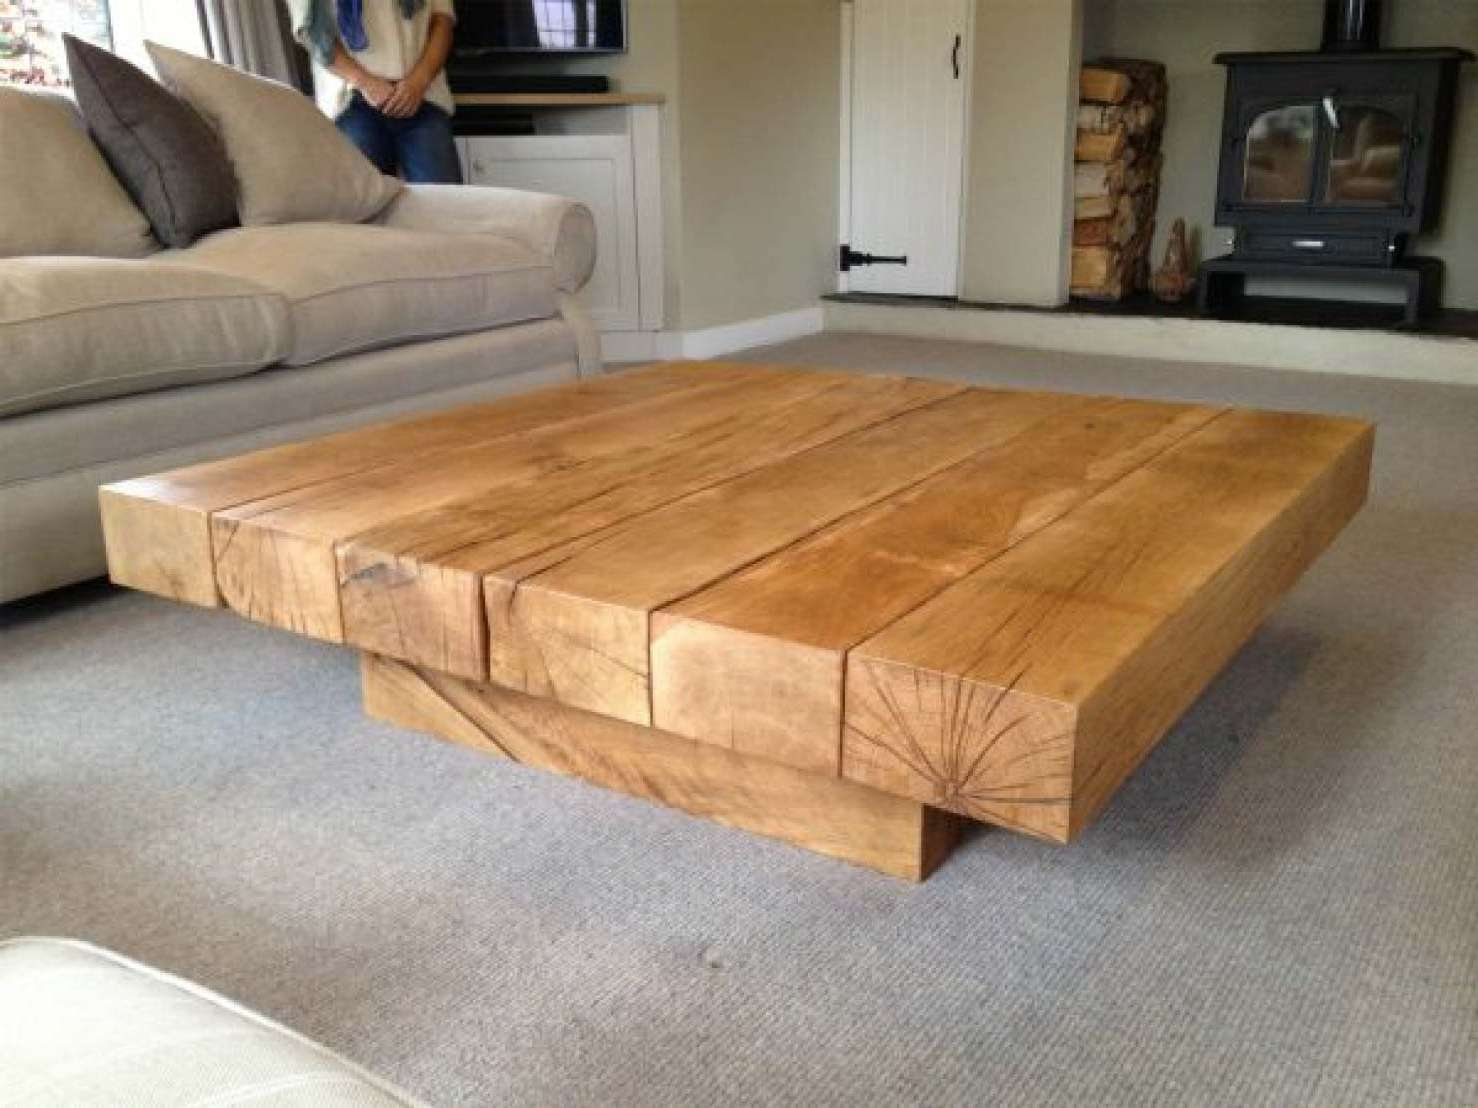 Abacus Tables In Most Recently Released Square Oak Coffee Tables (Gallery 1 of 20)